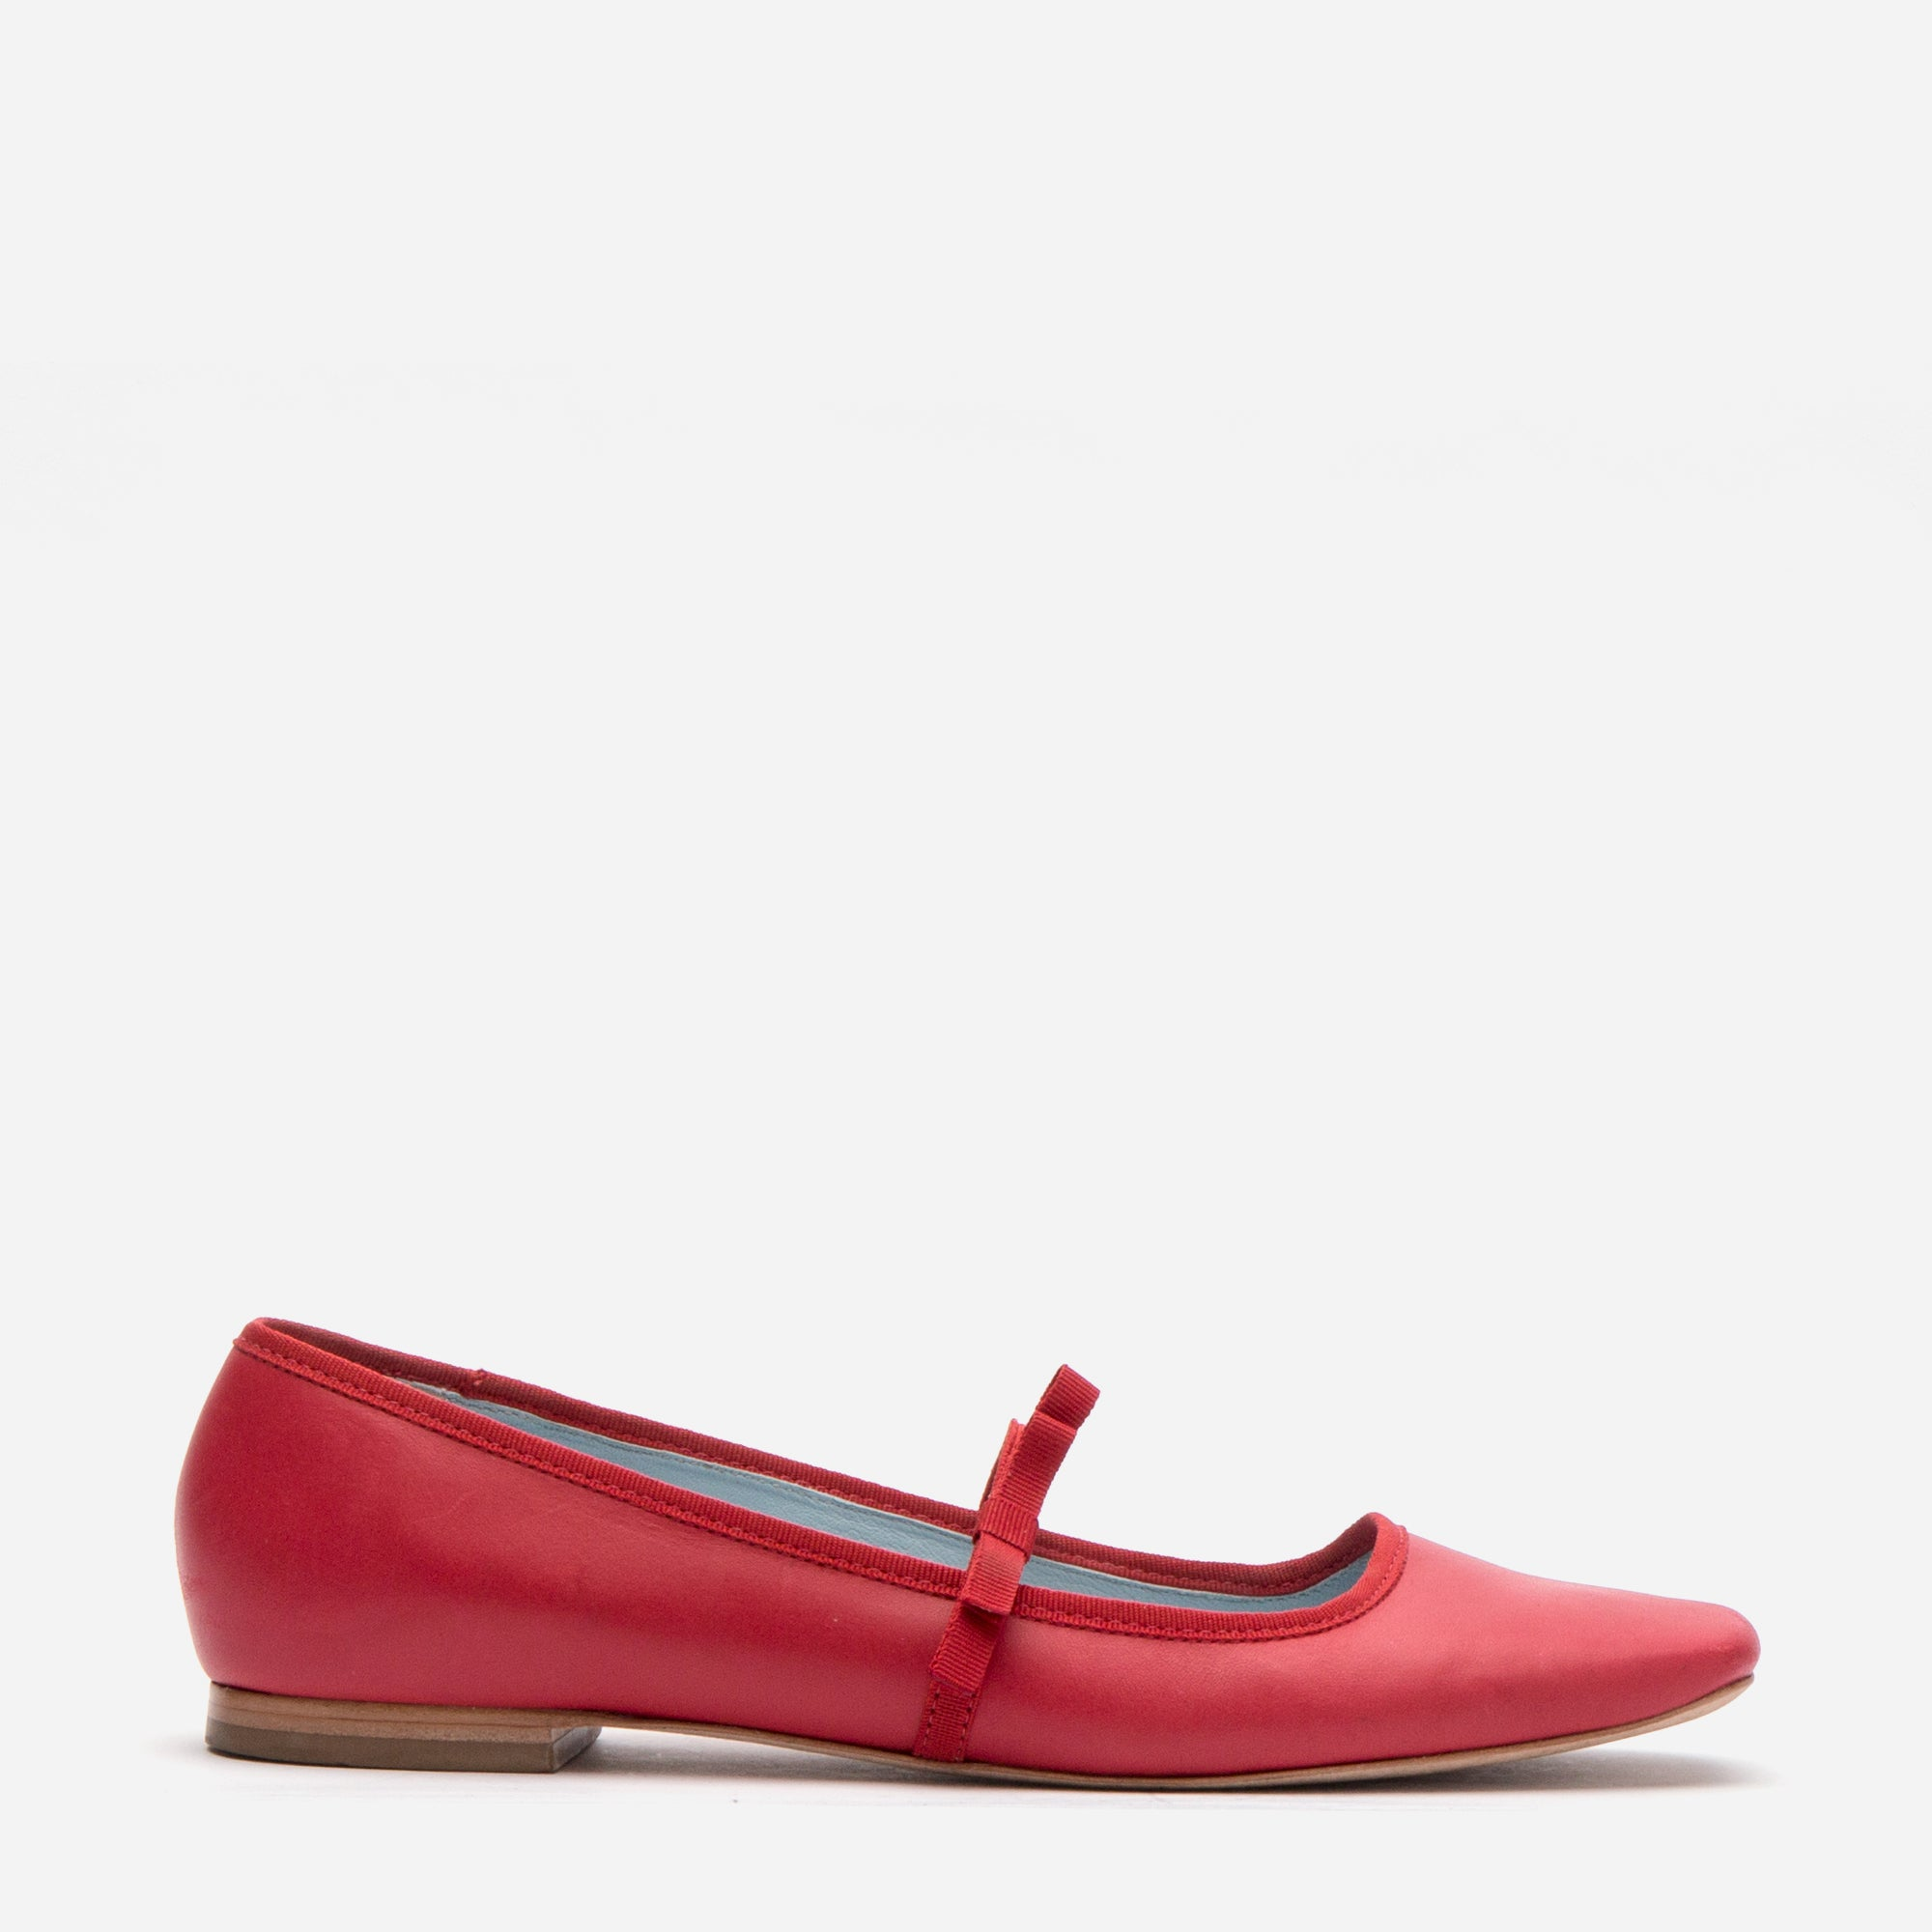 Jude Mary Jane Leather Flat Red - Frances Valentine